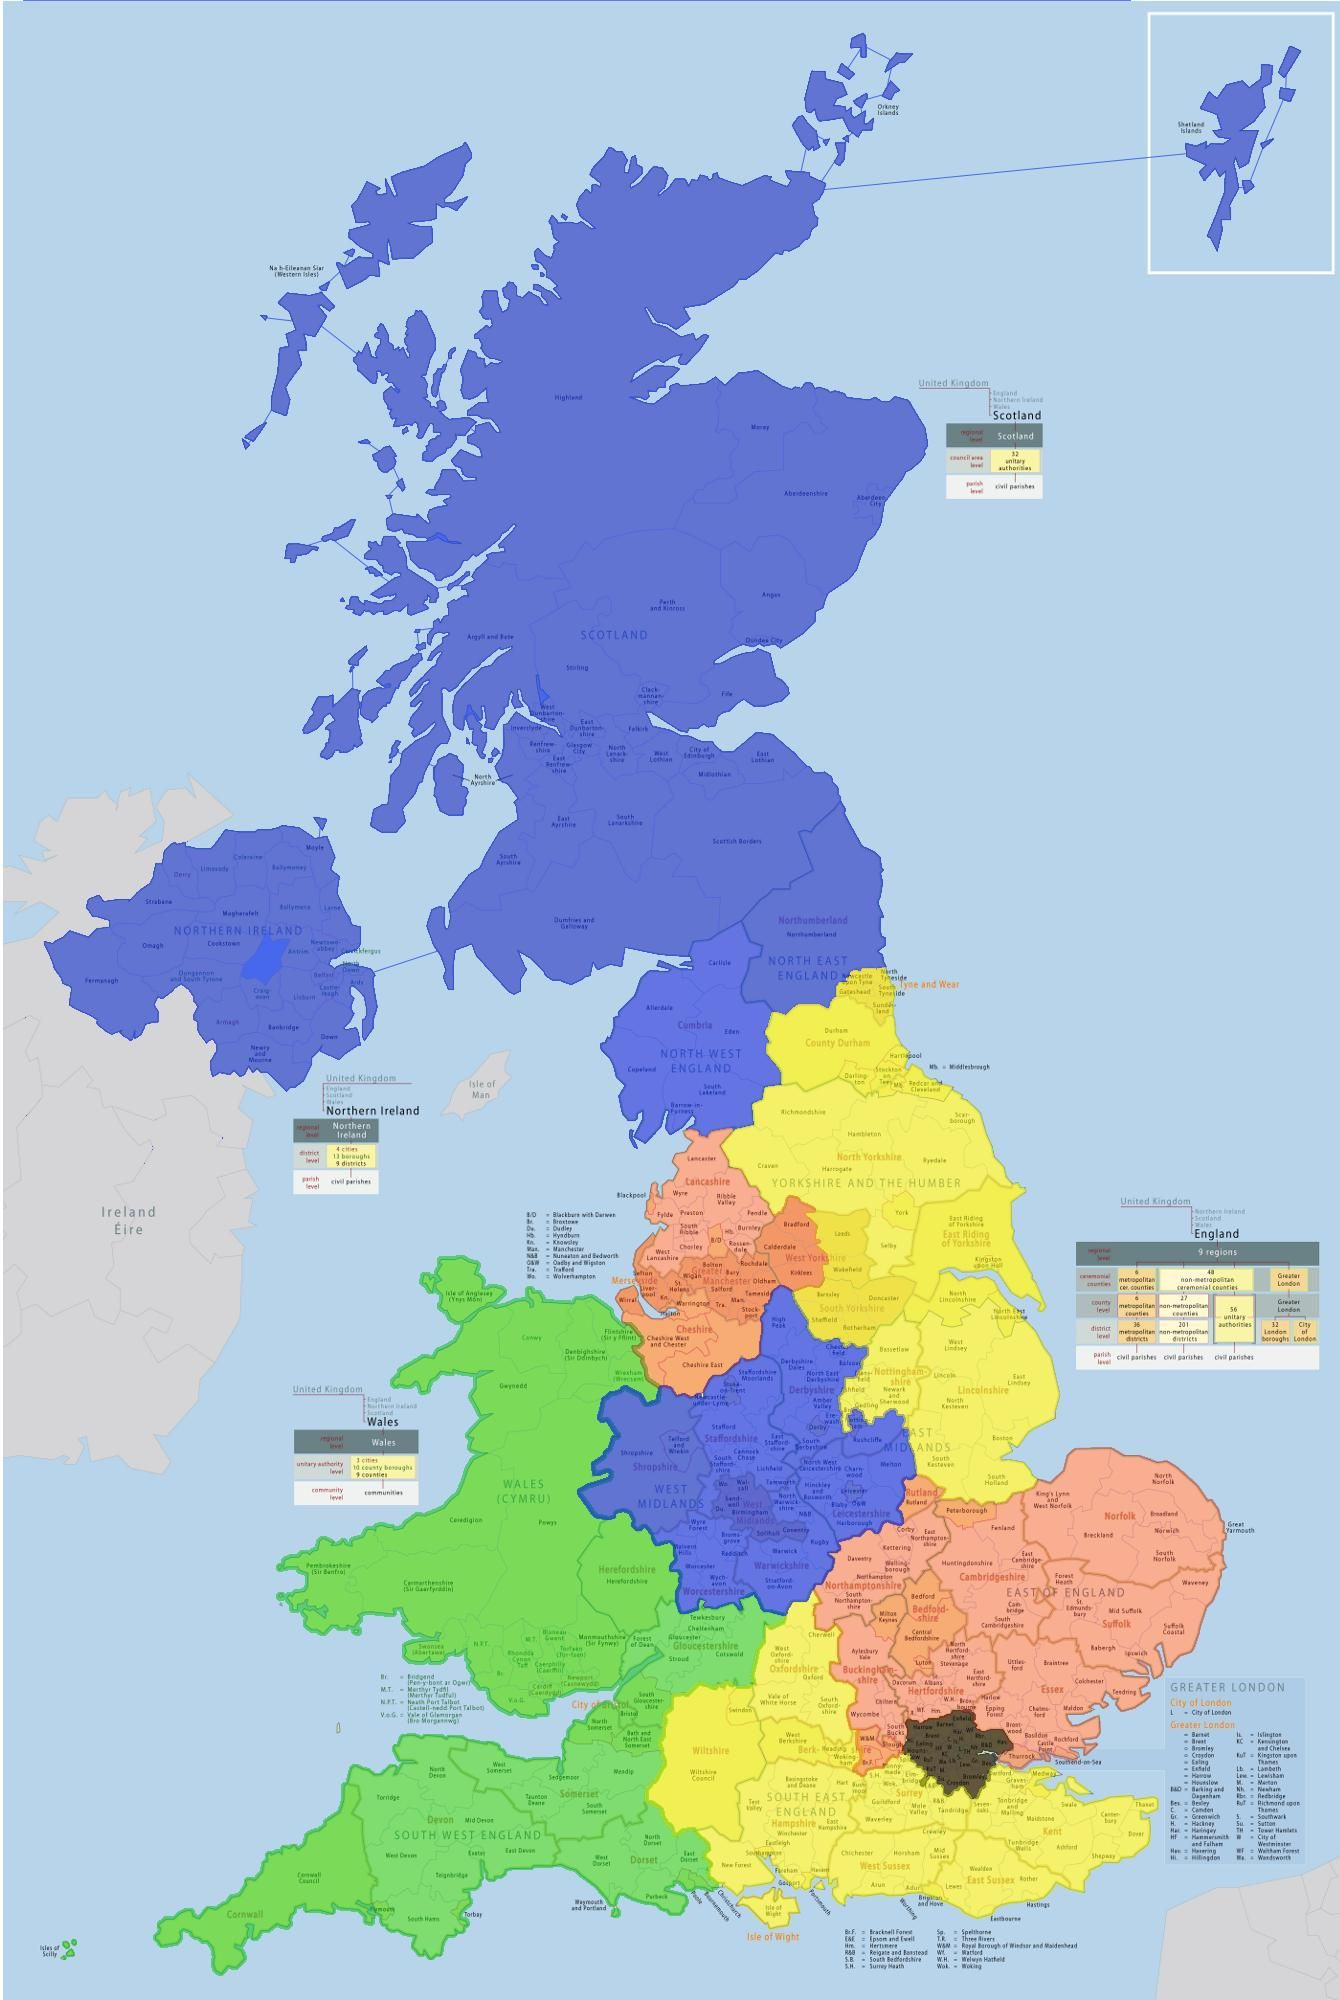 Where Is Great Britain On A World Map.Uk Split Up Into Areas Where Population Is Equal To That Of London